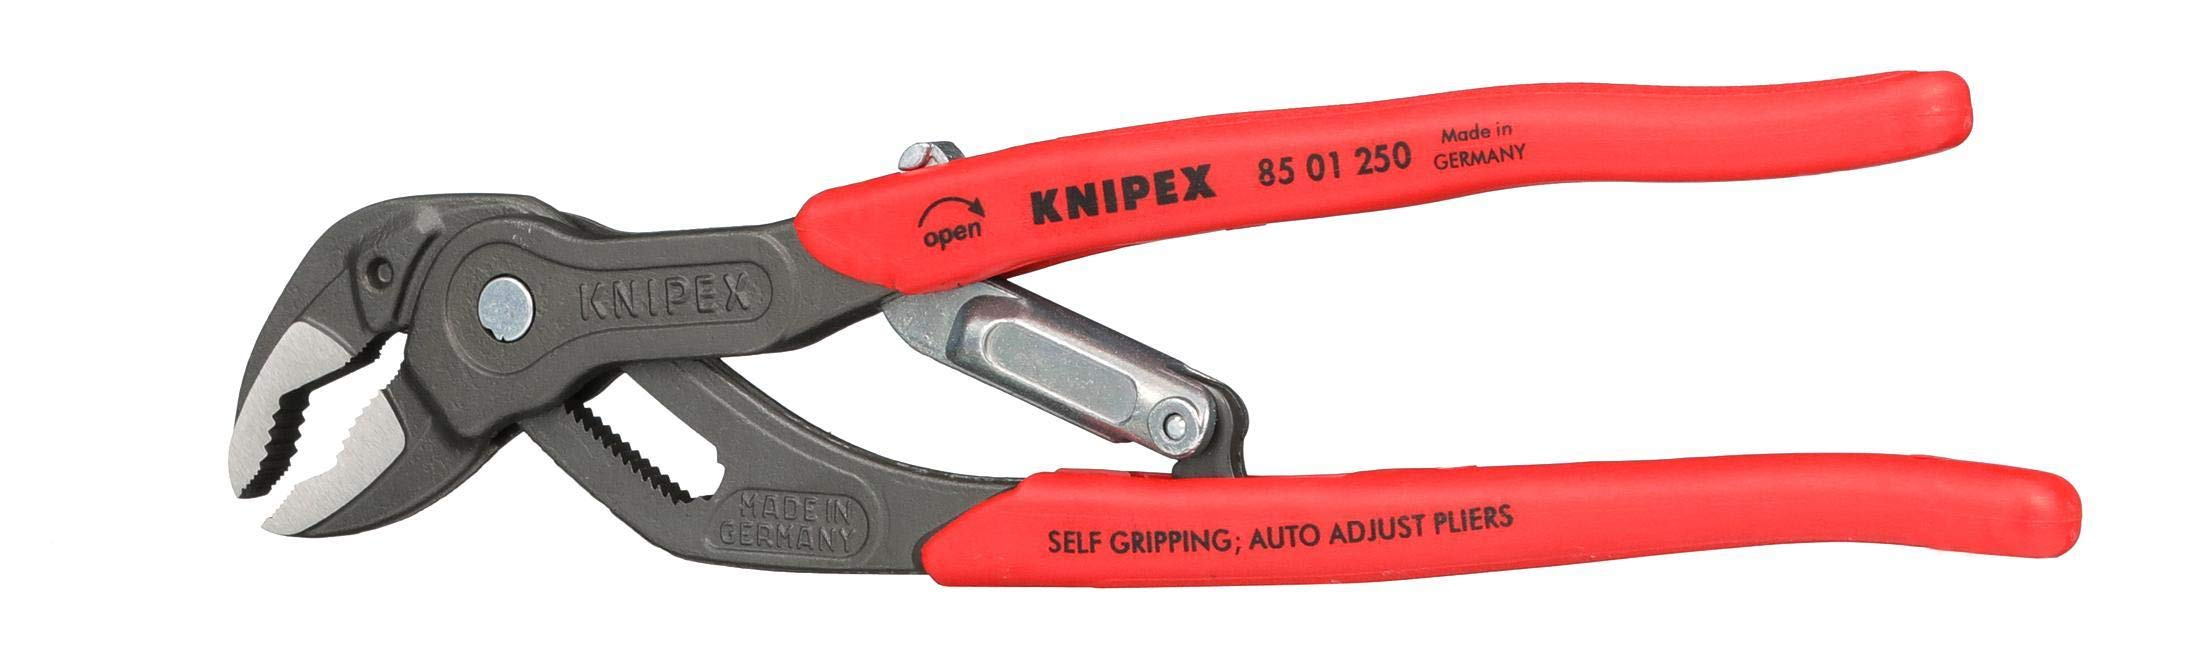 KNIPEX 85 01 250 US Auto Adjusting Water Pump Pliers